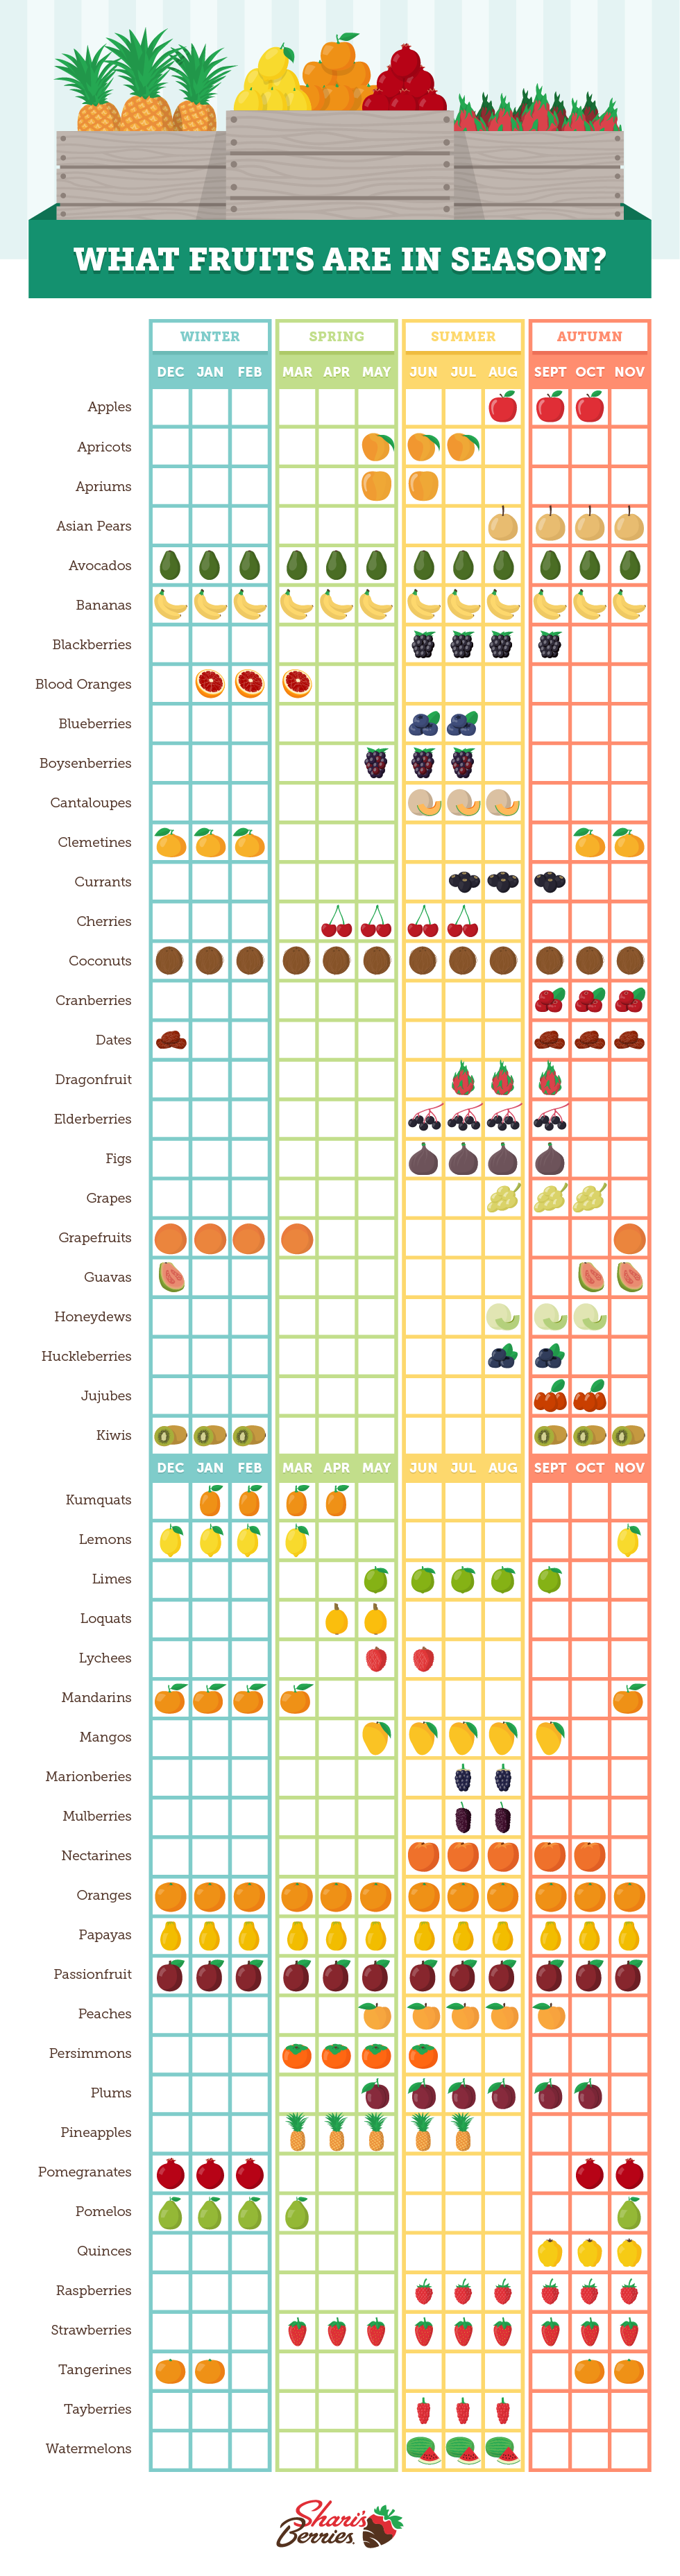 What Fruits Are In Season? by Shari's Berries